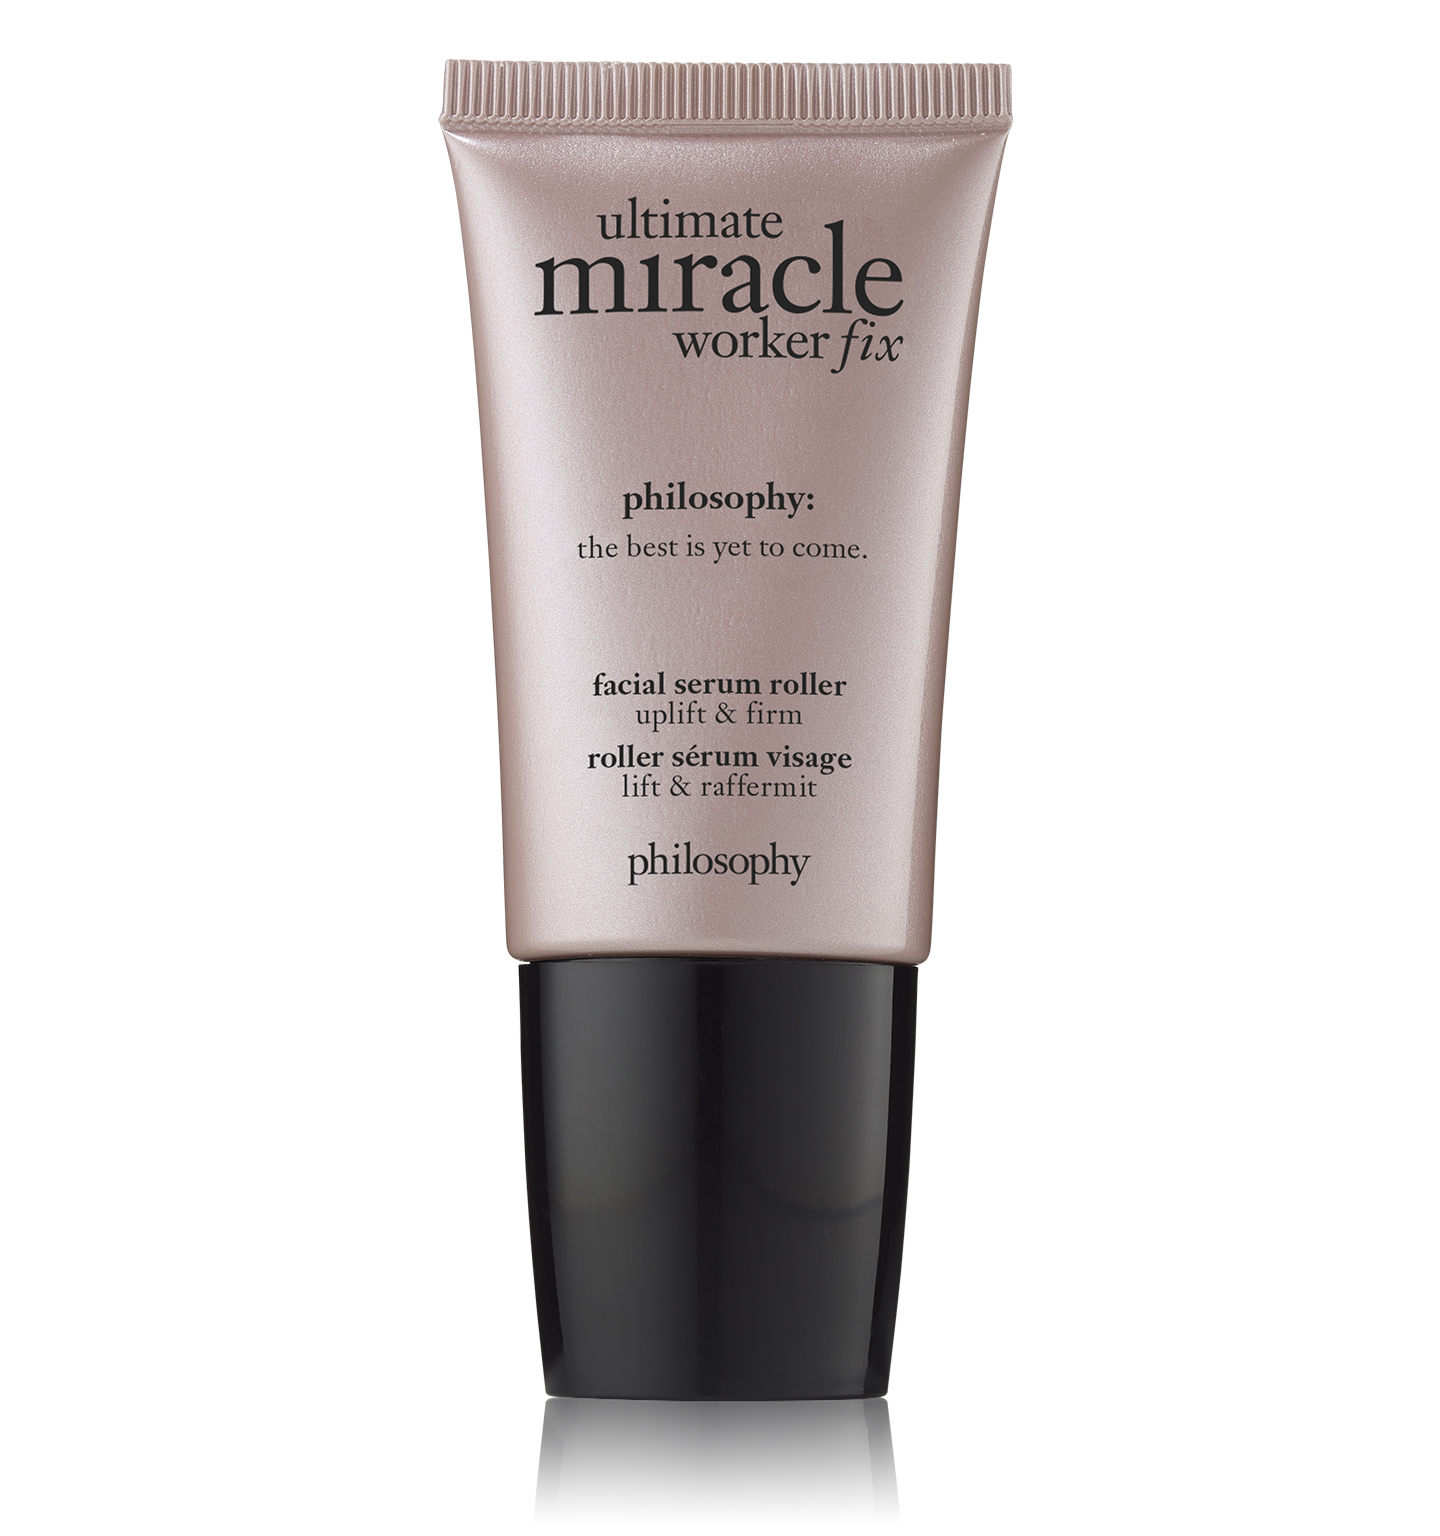 ultimate miracle worker fix retinol serum facial roller